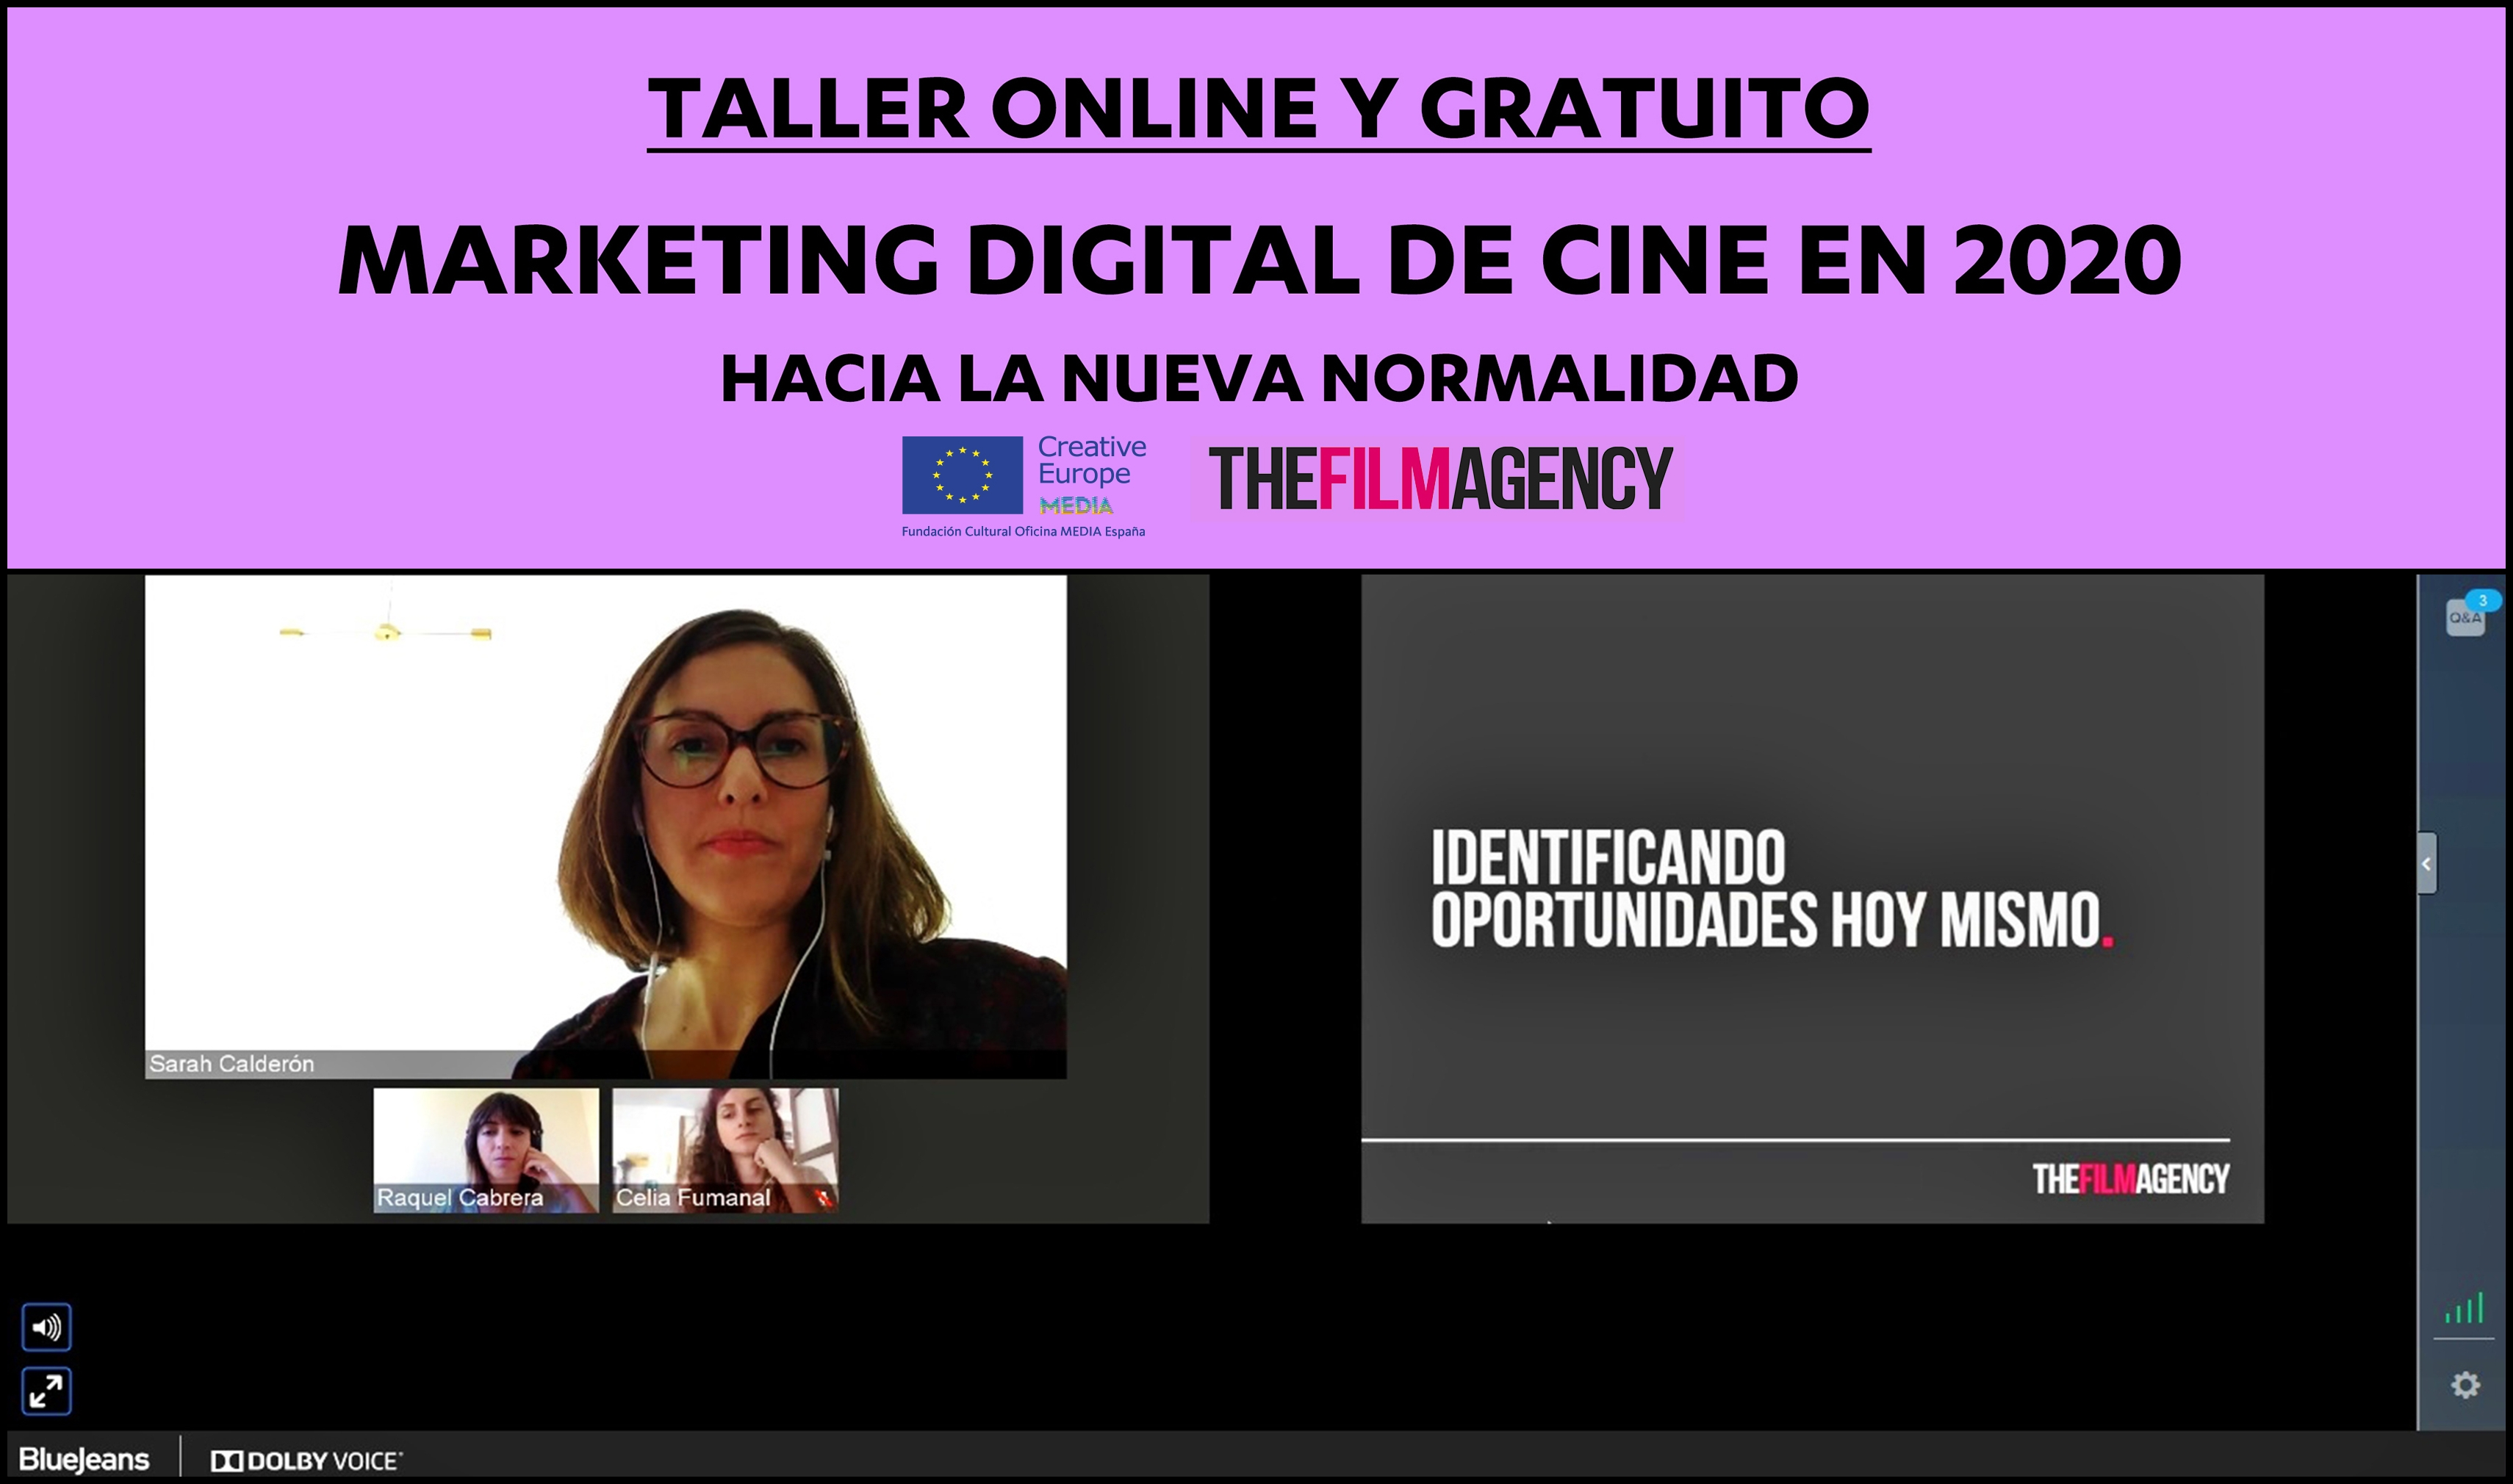 TALLER ONLINE: Vídeo de la sesión sobre marketing digital de cine en 2020 con The Film Agency